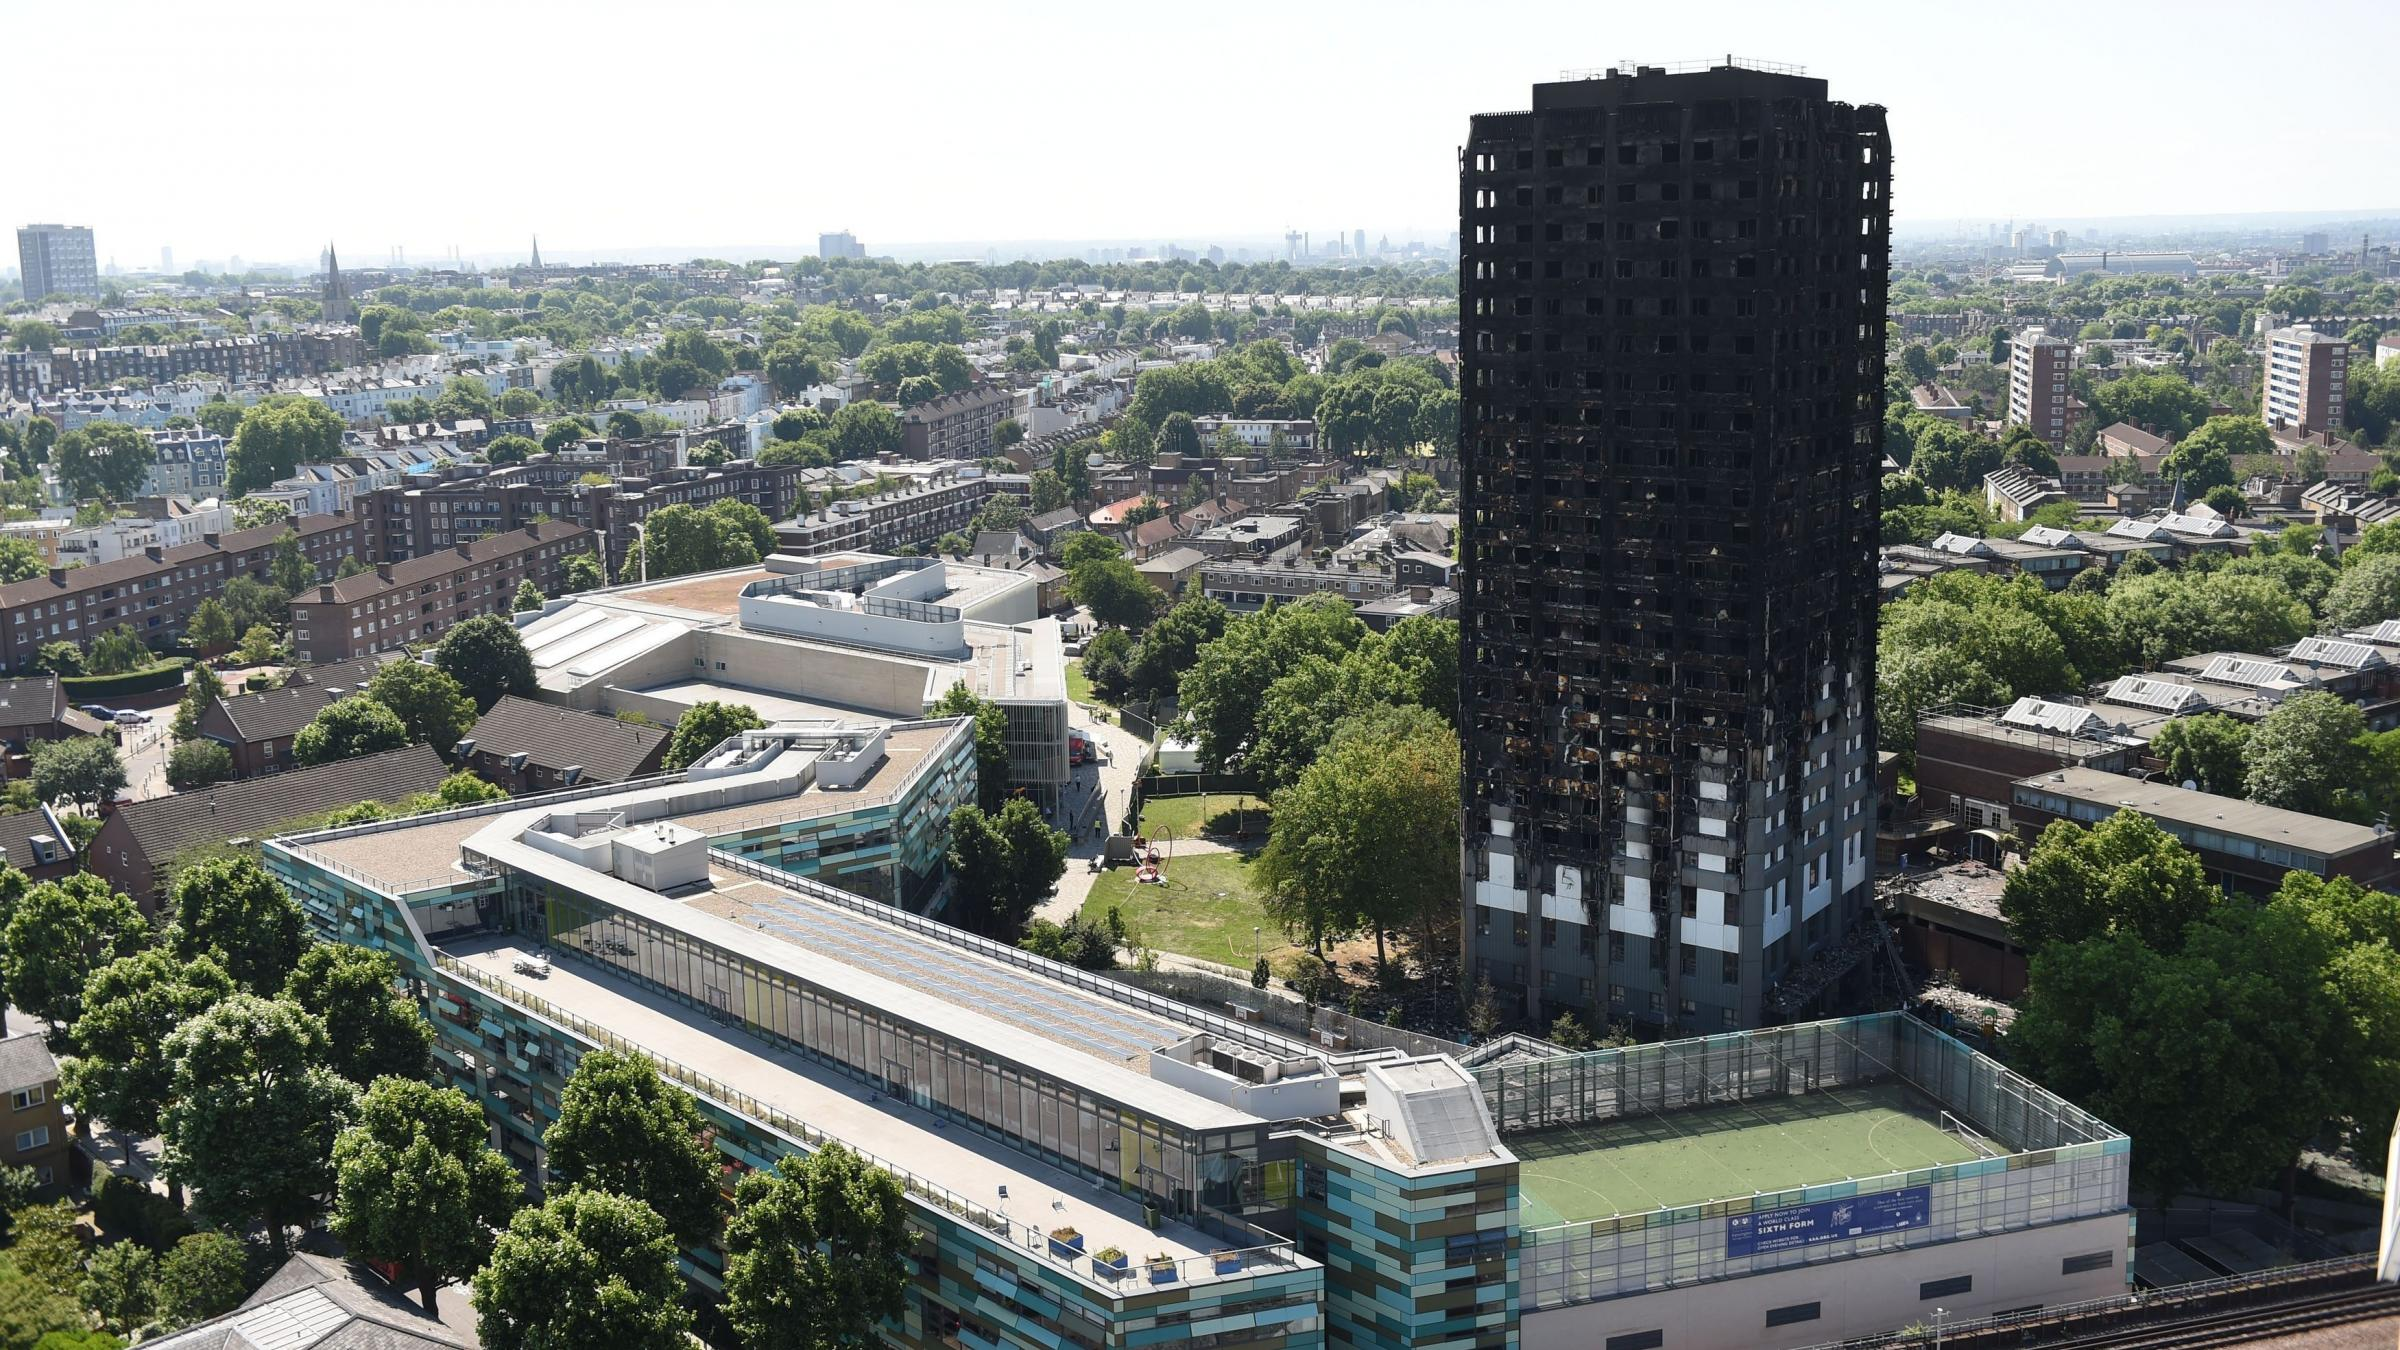 At least 58 presumed dead in London Grenfell fire